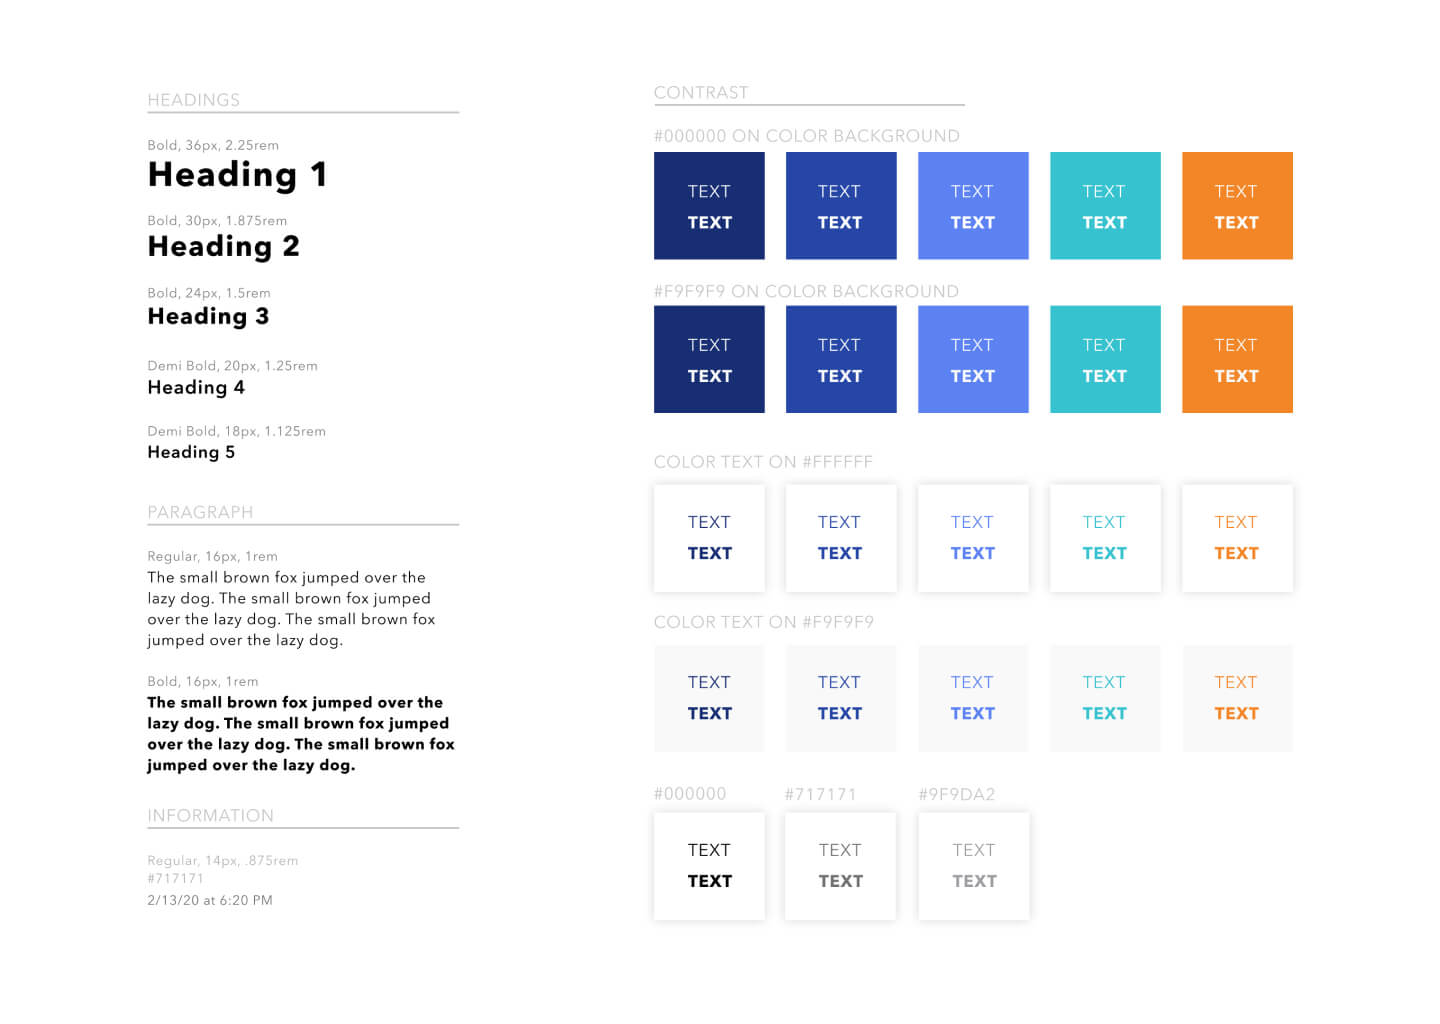 Knight Hacks Design System fonts, colors, and contrast guidelines